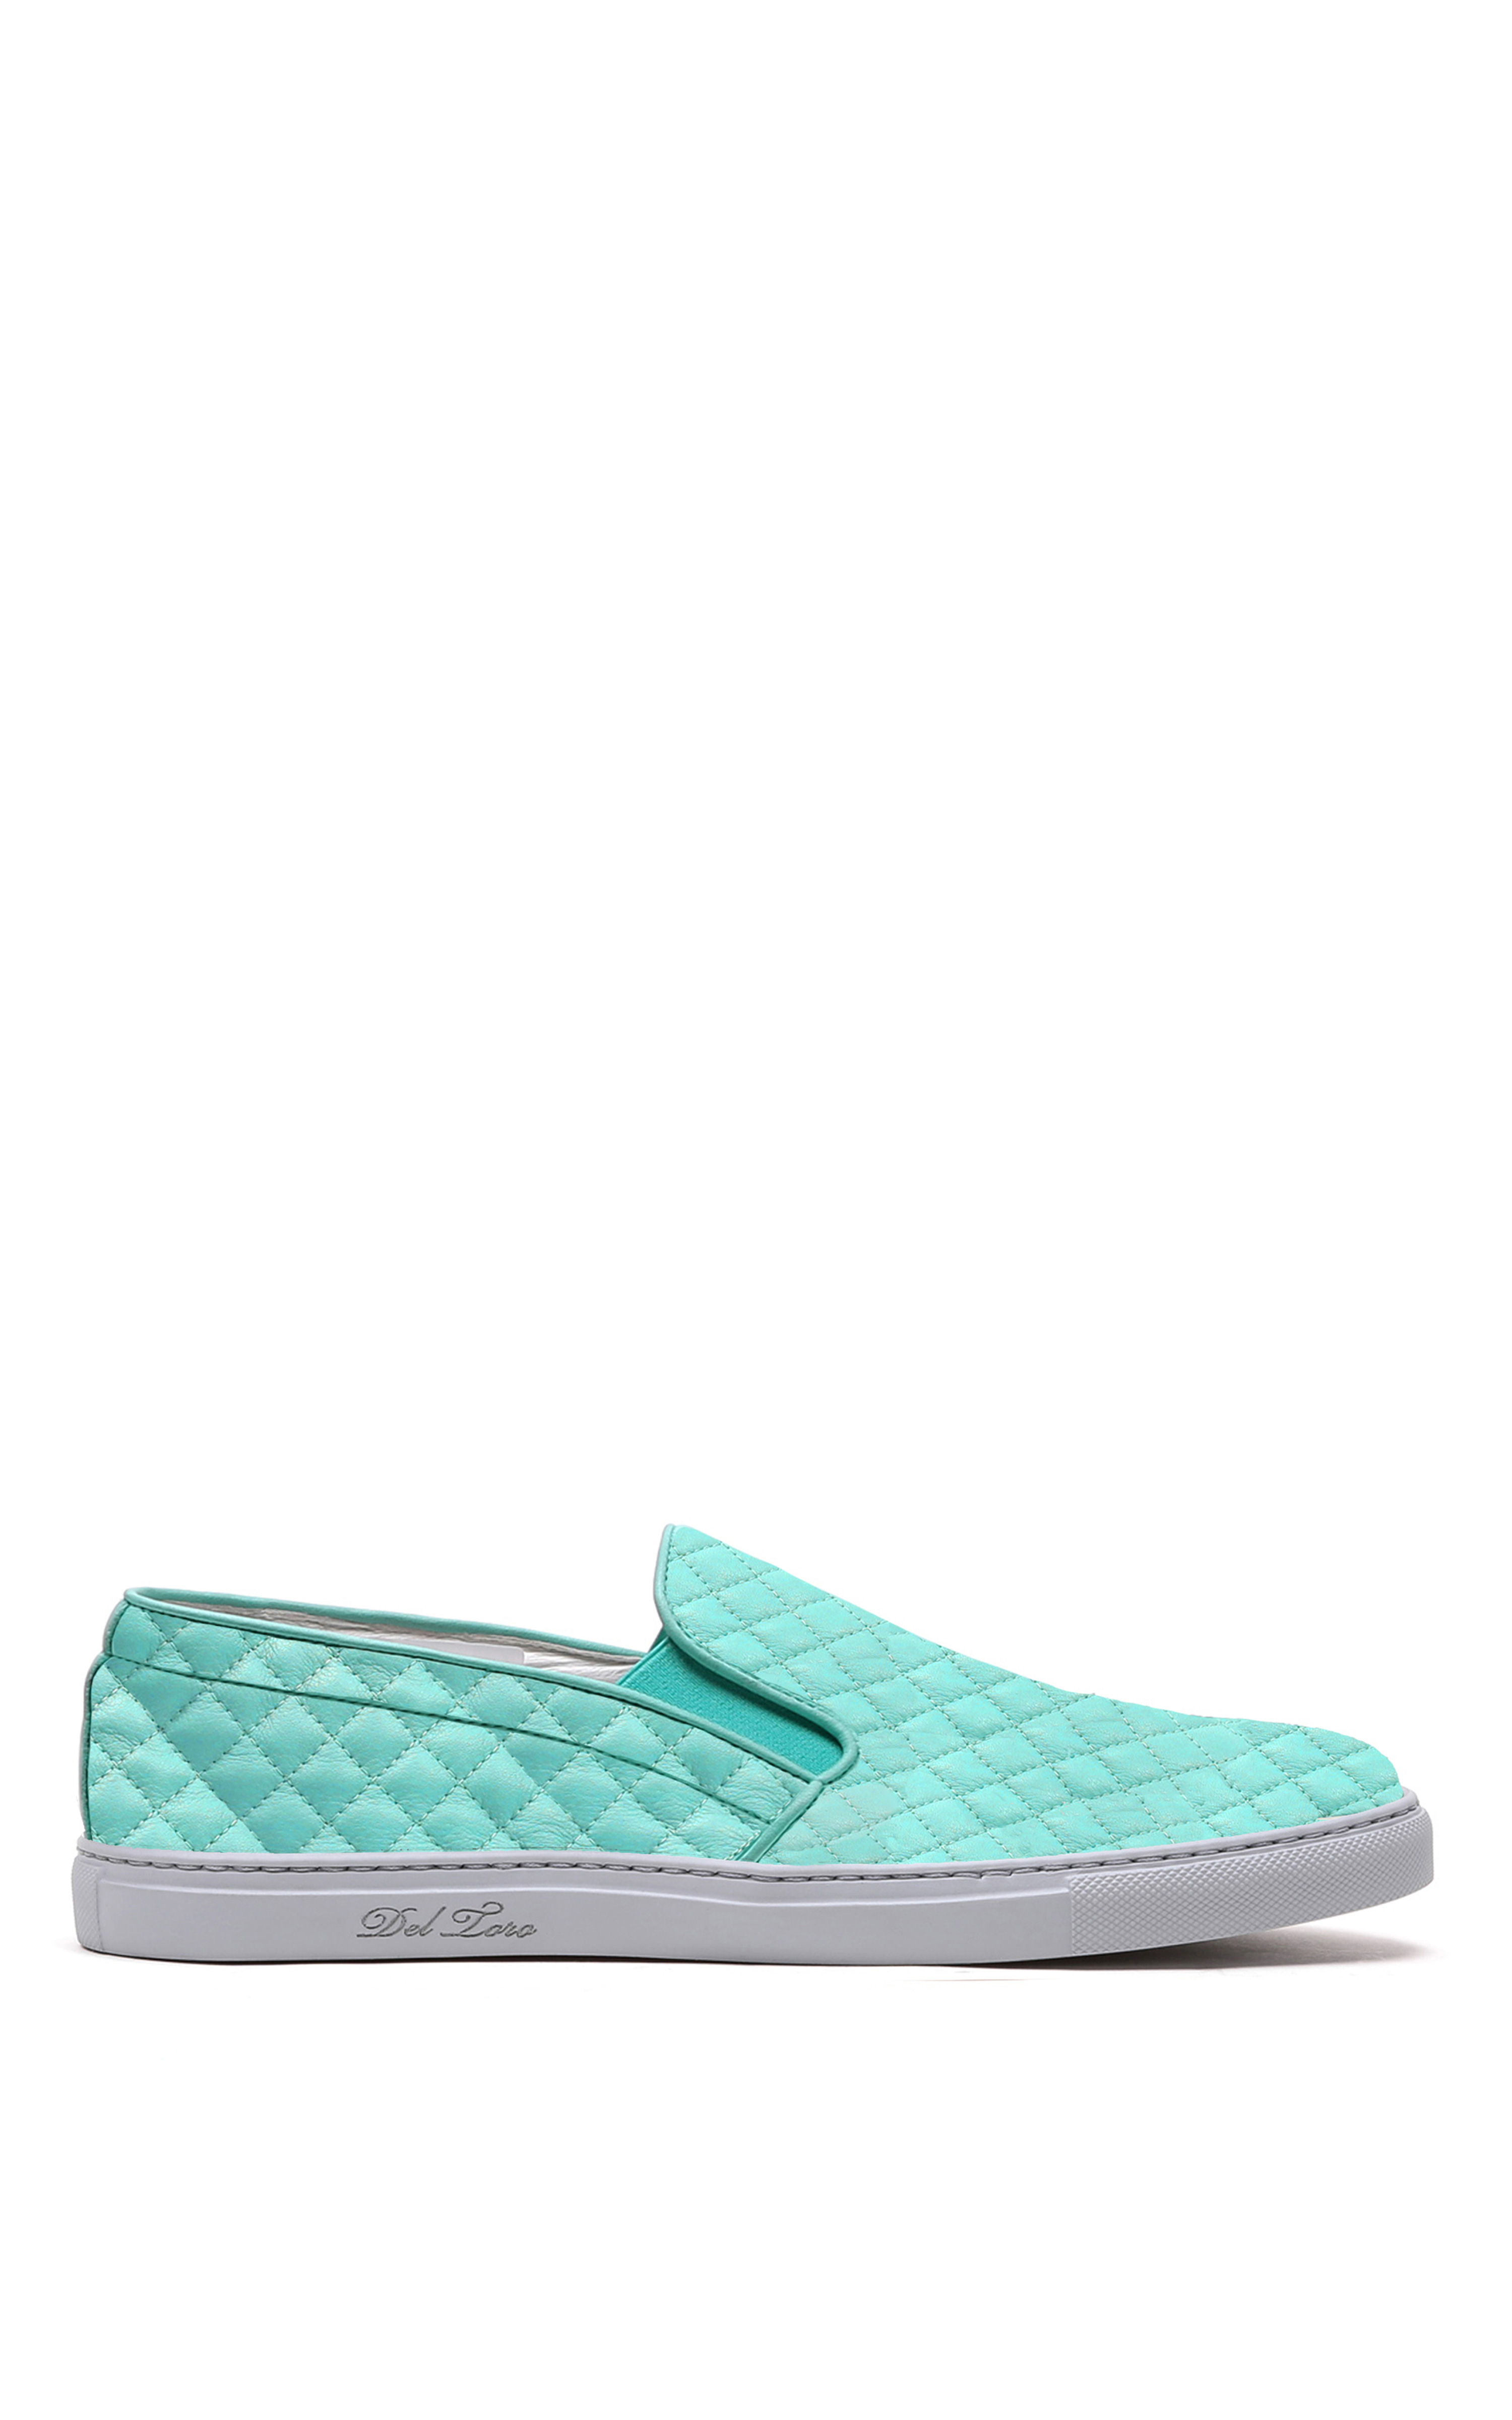 Del Toro Mo Exclusive Sea Foam Quilted Leather Slip On